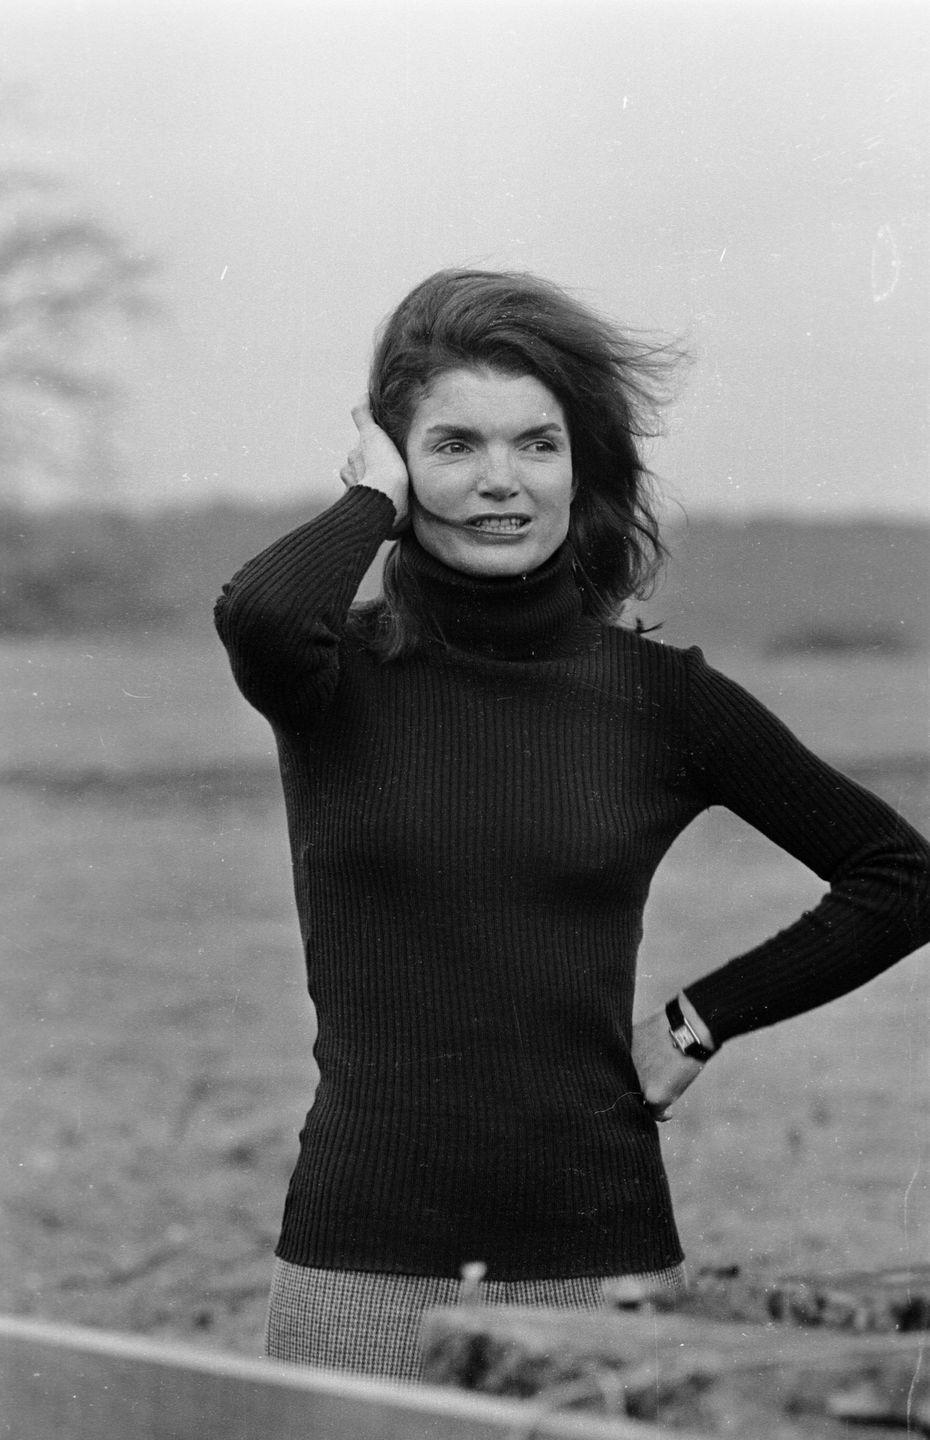 "<p>Jackie Kennedy Onassis seen sporting her<a href=""https://www.townandcountrymag.com/style/fashion-trends/g9947418/10-brands-jackie-kennedy-loved/?slide=6"" rel=""nofollow noopener"" target=""_blank"" data-ylk=""slk:iconic Cartier 'Tank' watch"" class=""link rapid-noclick-resp""> iconic Cartier 'Tank' watch</a> while in the countryside. </p>"